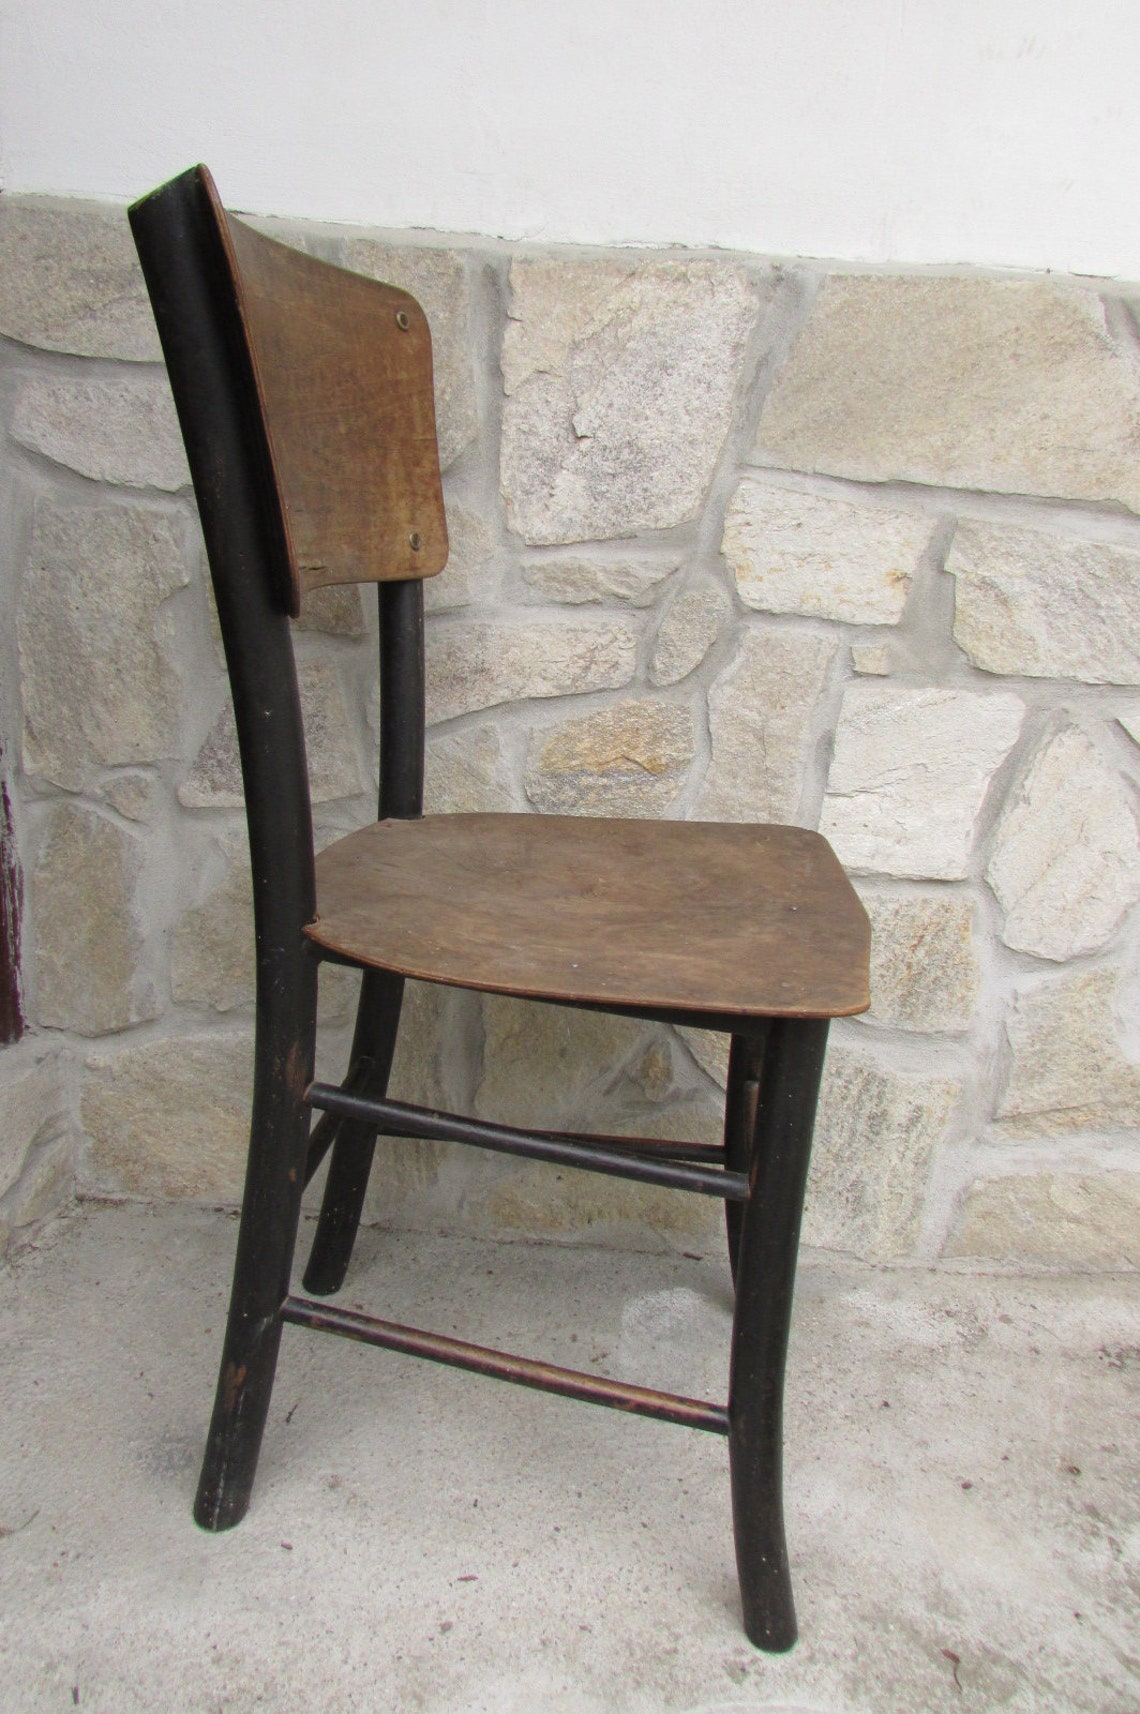 Old wooden chair - Vintage wooden chair - Rustic chair - Wooden chair - Old decor - Old chair - Old handmade chair